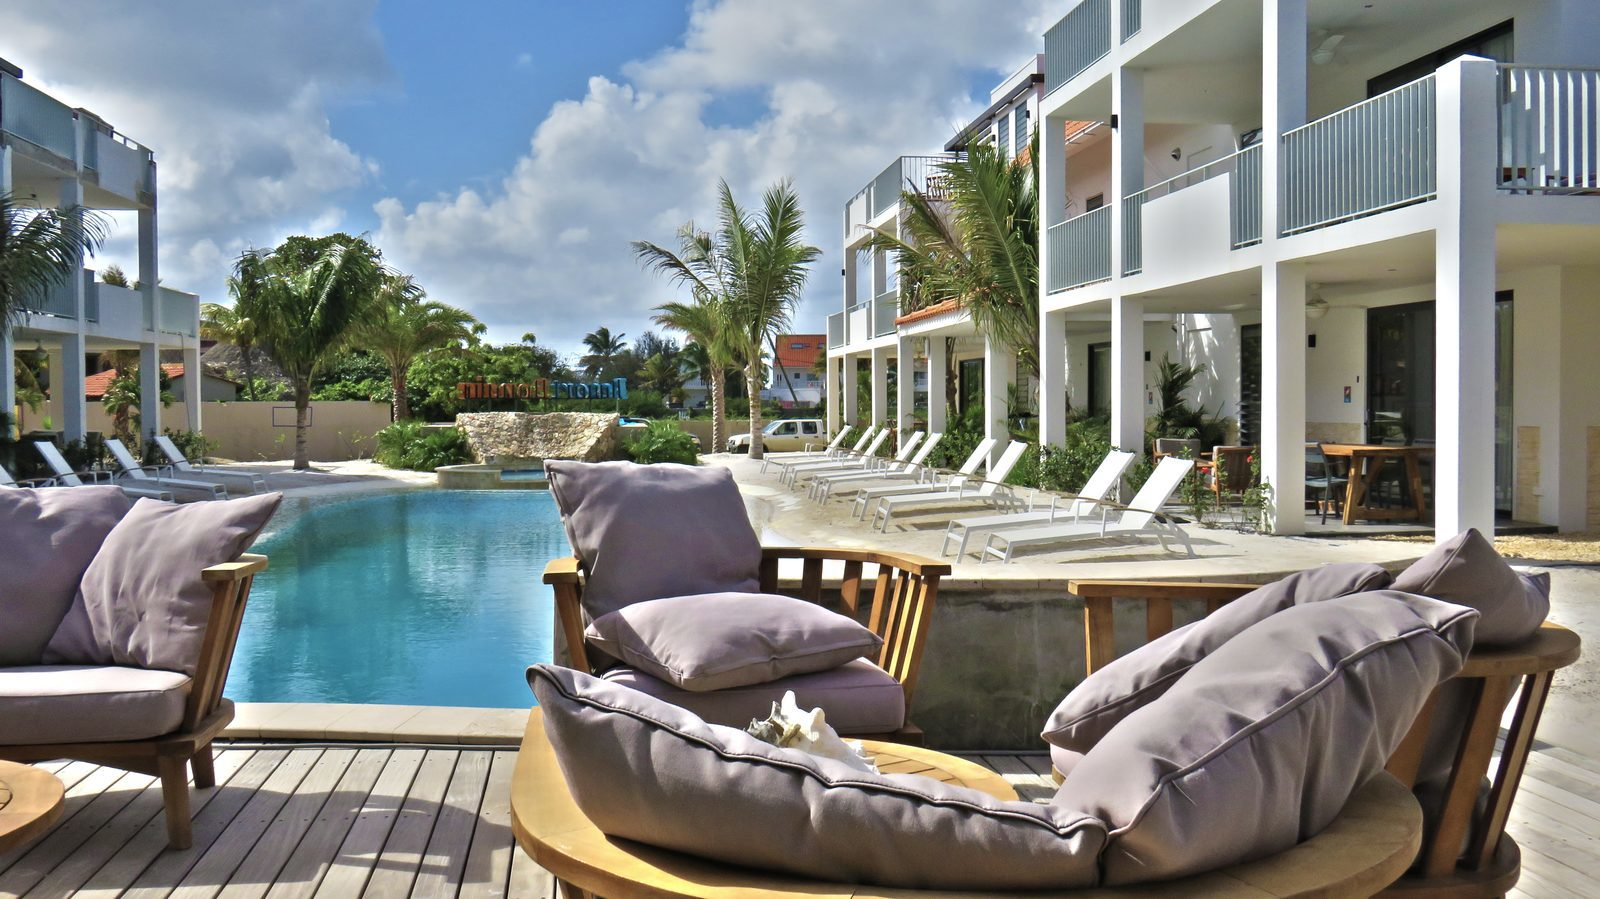 Resort Bonaire allows guests of all ages to enjoy this beautiful island. View the photos and book your stay on Bonaire!